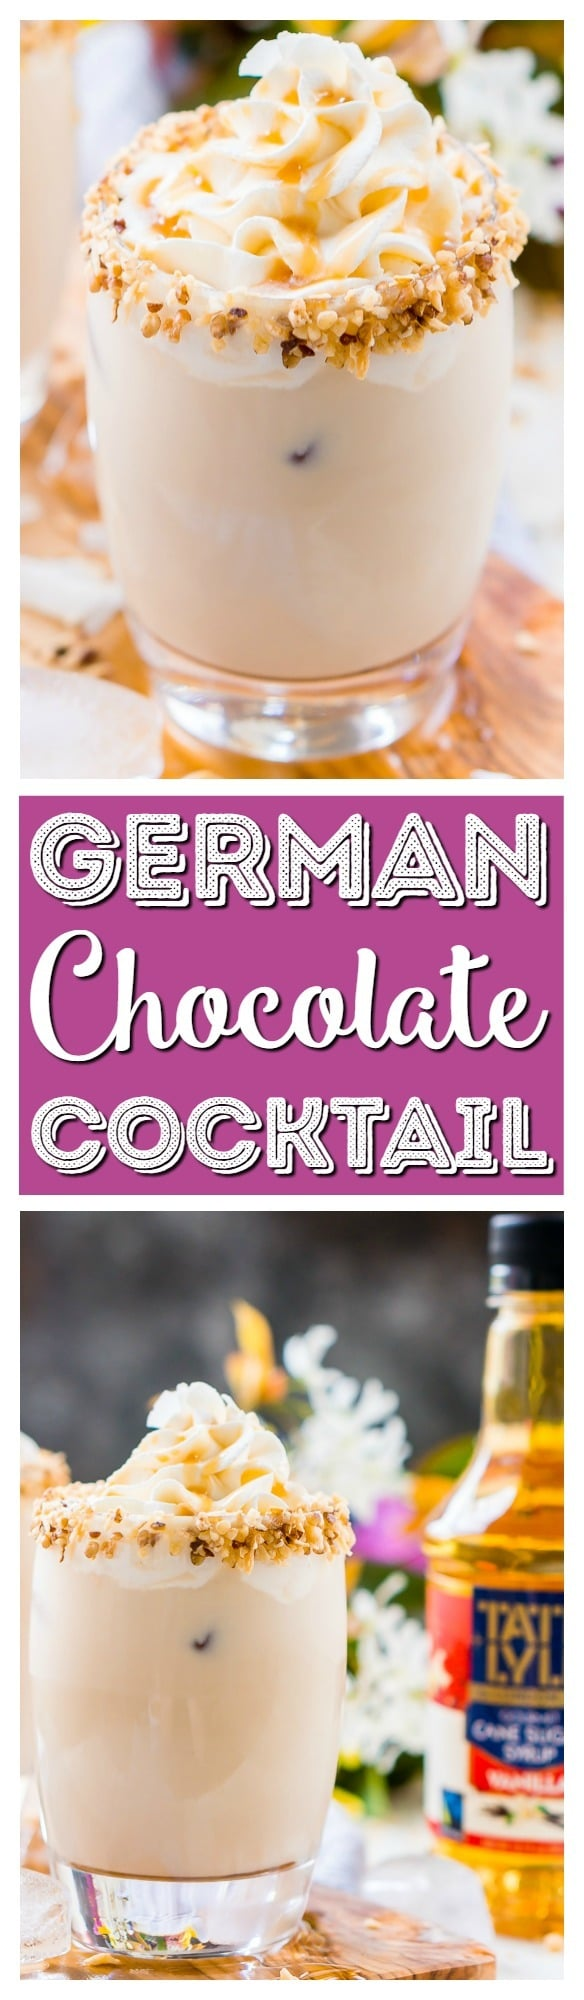 This German Chocolate Cocktail is a sweet dessert drink that's loaded with coconut, vanilla, chocolate, and caramel flavors! It can be made non-alcoholic too! via @sugarandsoulco